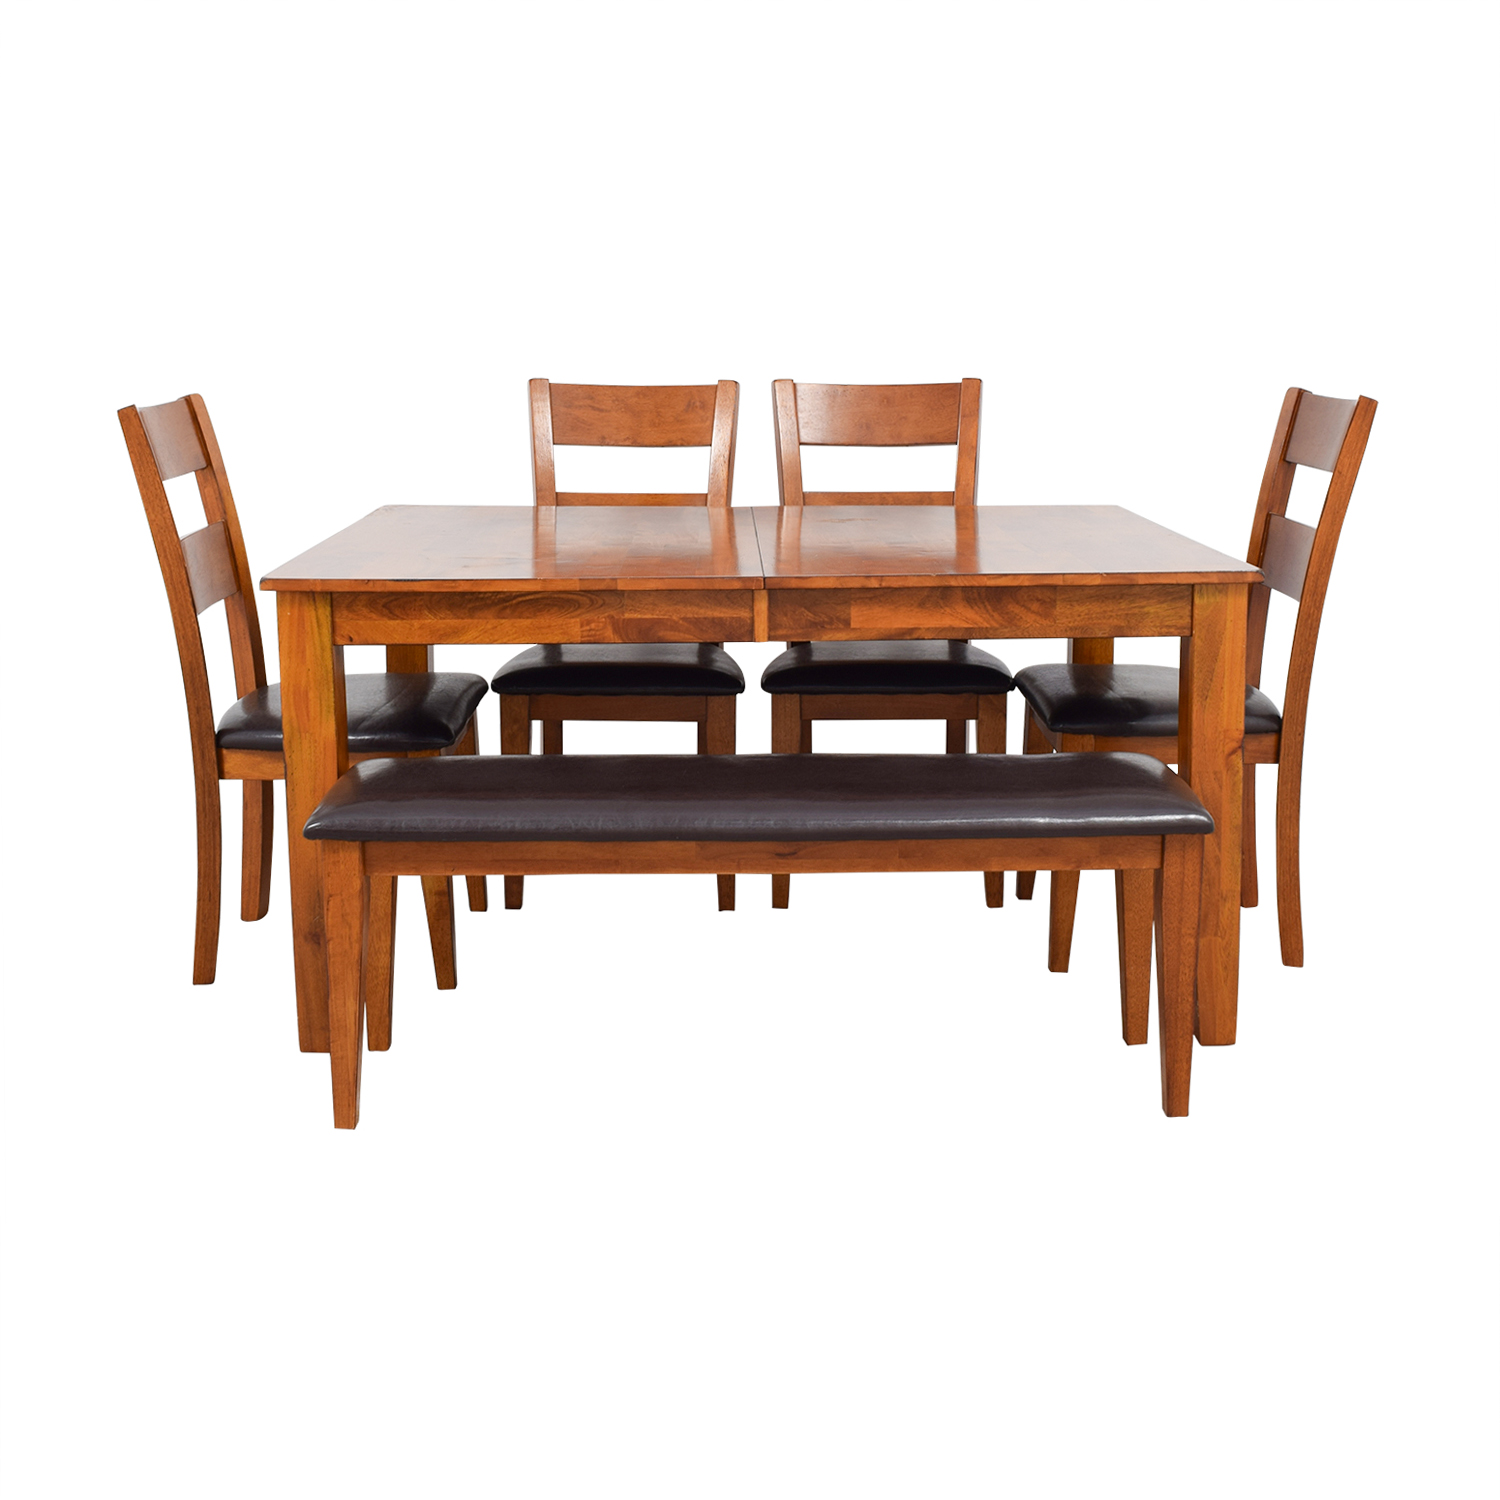 Steve Silver Co Mango Erfly Leaf Dining Table With Chairs And Bench